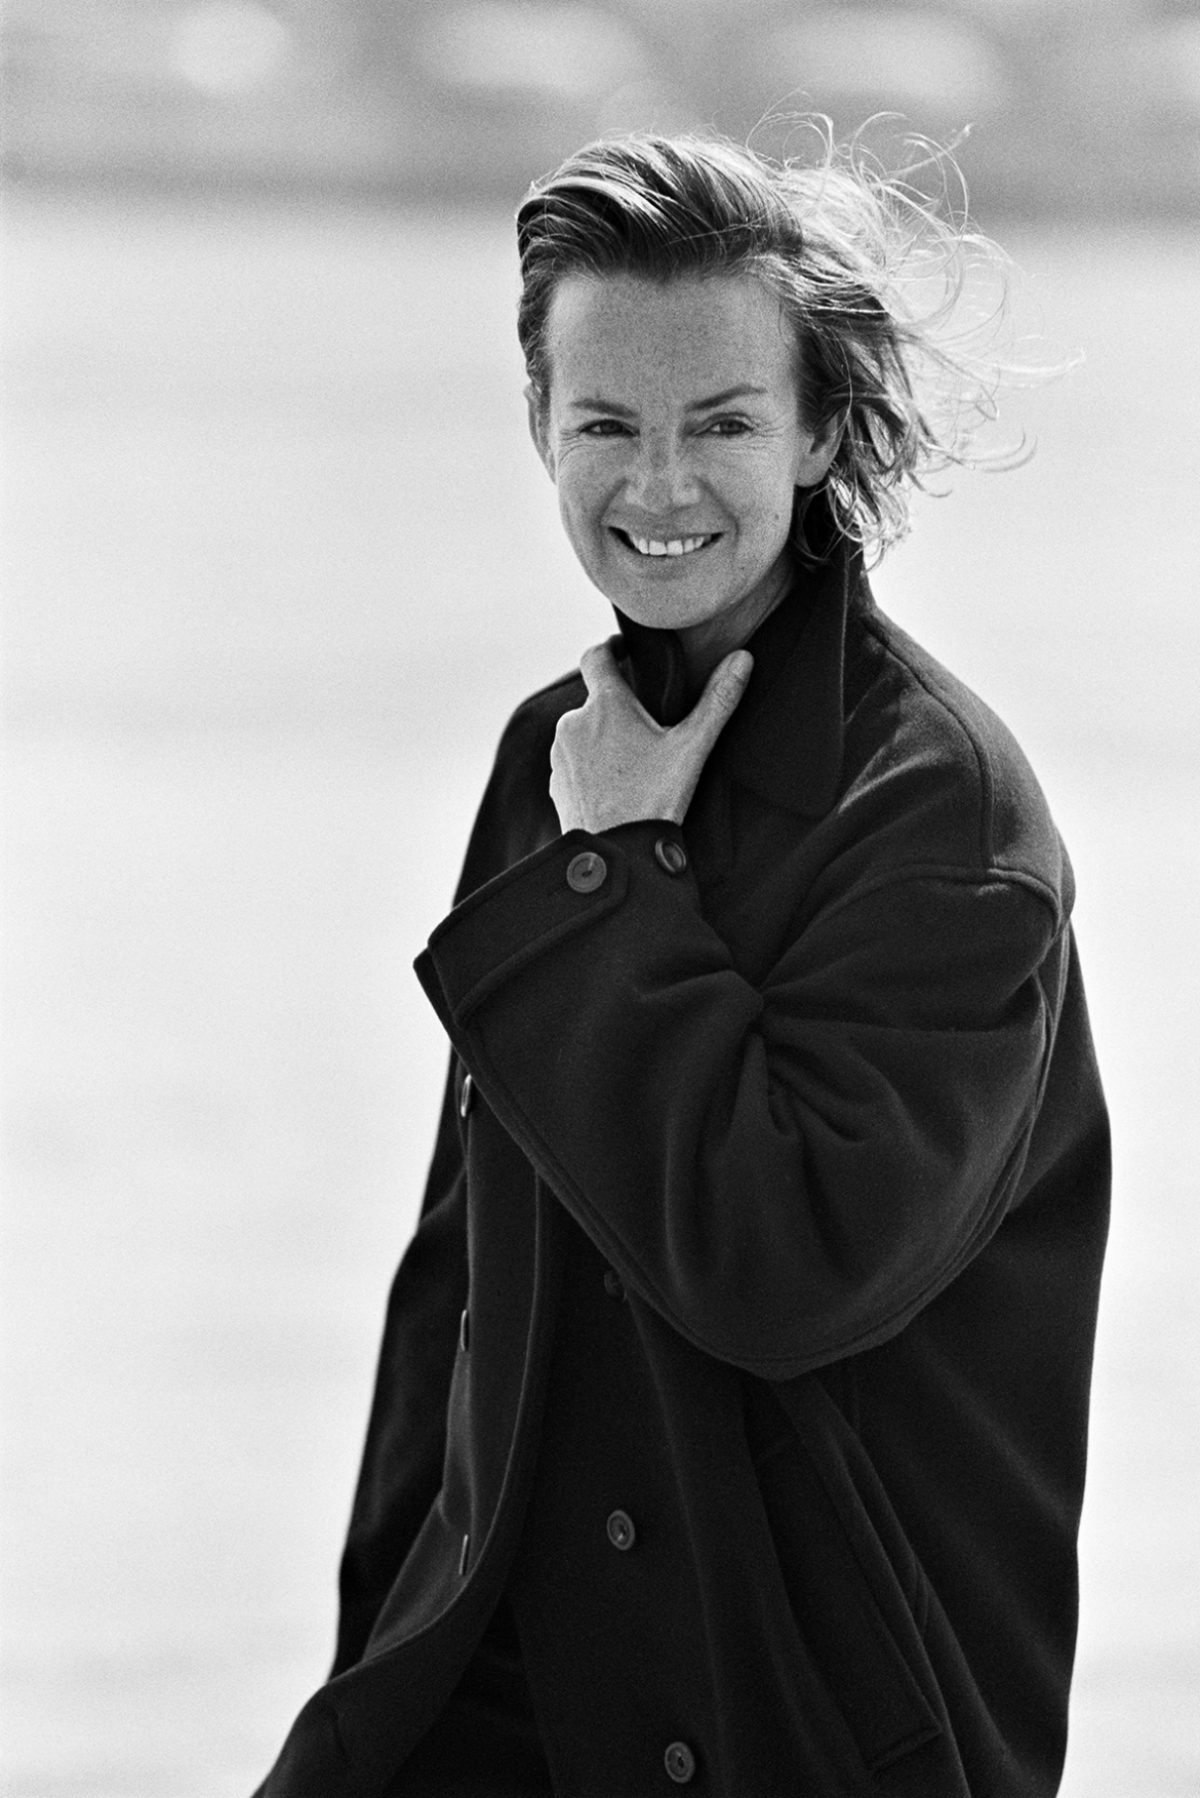 THERE IS A MAJOR JIL SANDER EXHIBITION COMING YOUR WAY